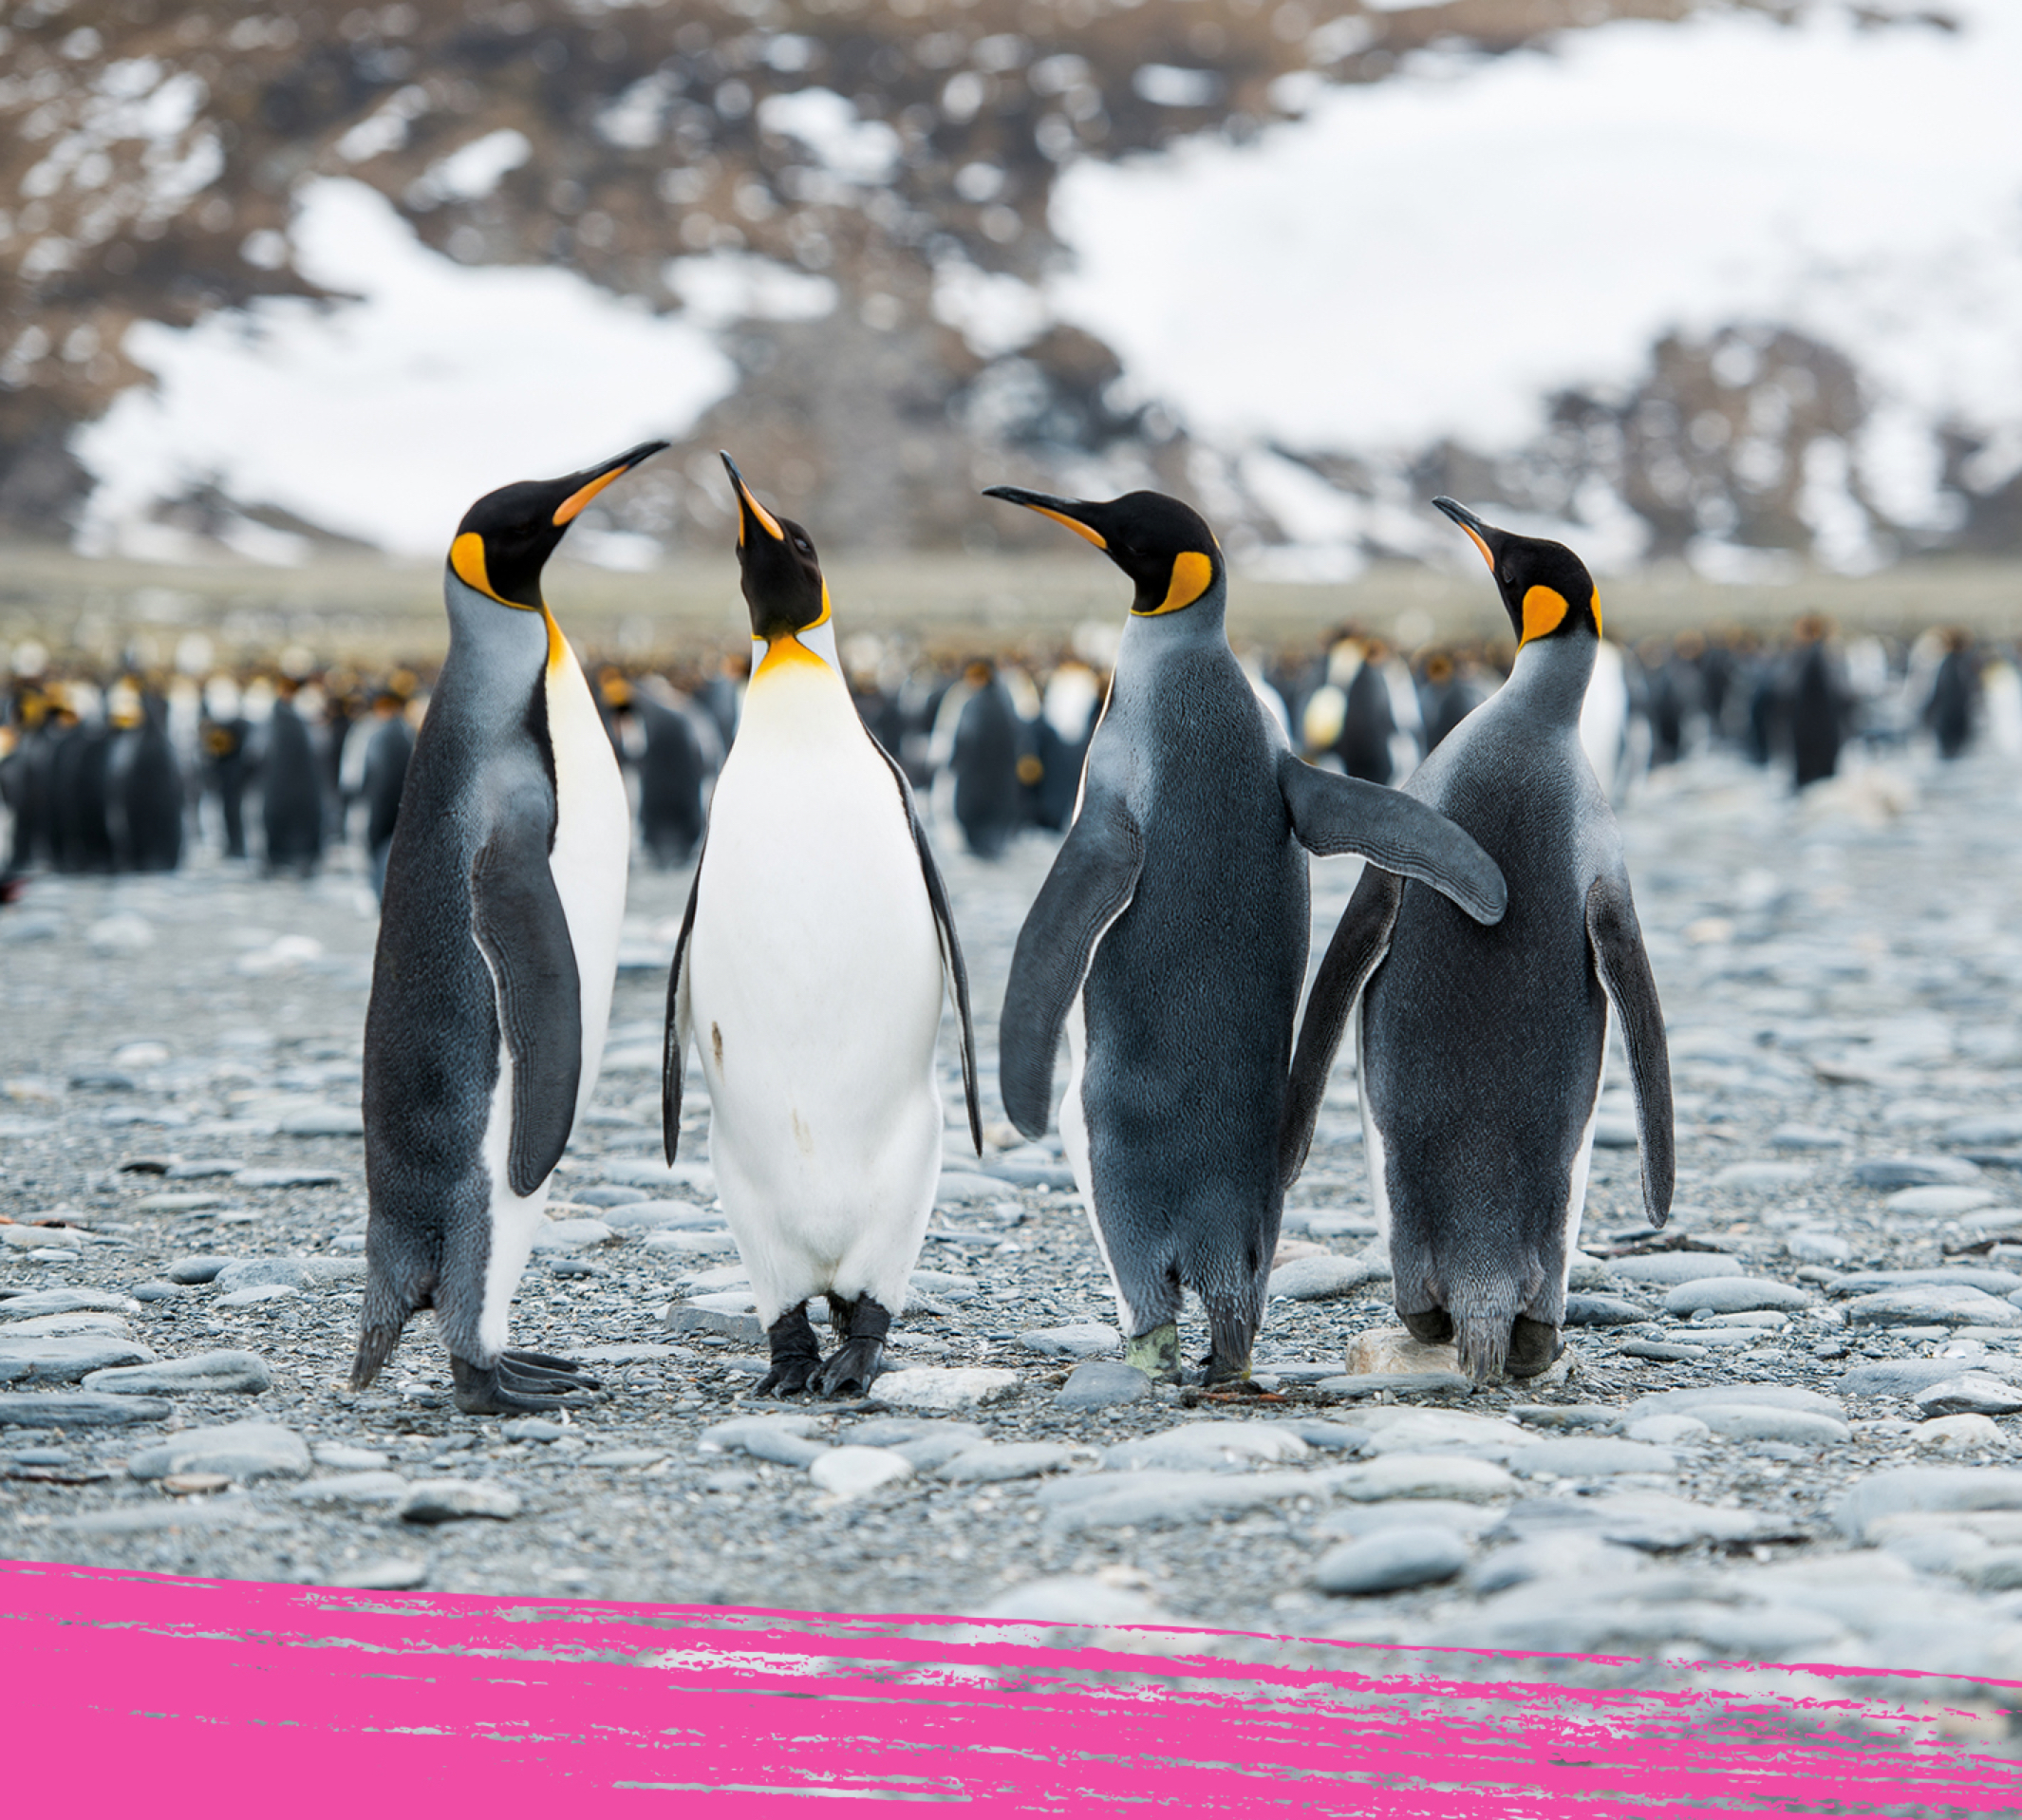 Group of emperor penguin standing close to each other